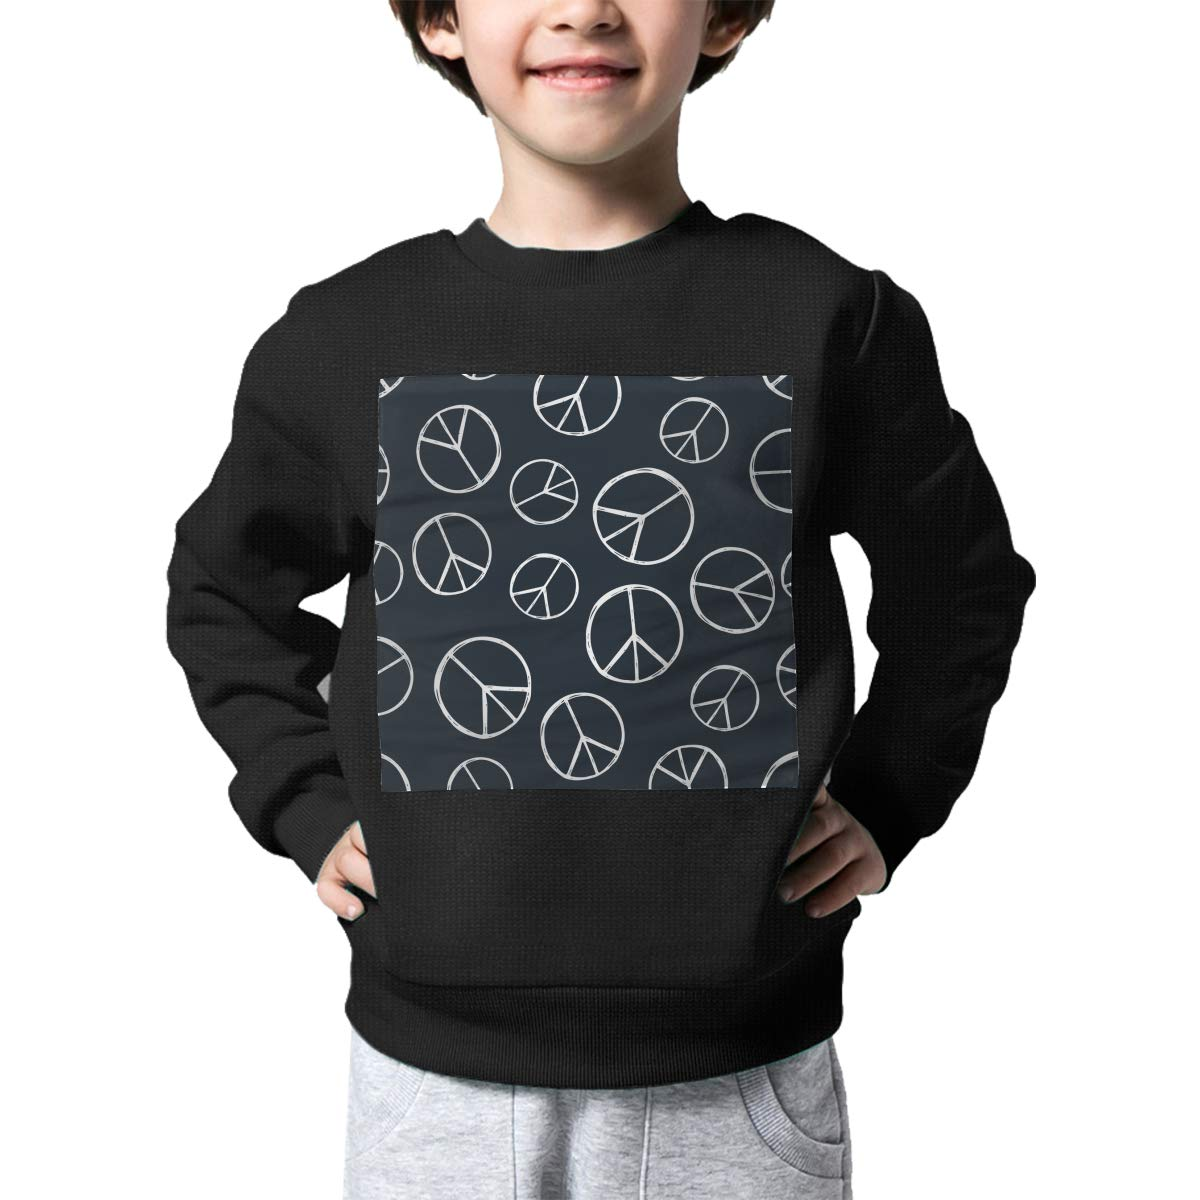 Tie Dye Peace Sign Pattern Printed Baby Girls Kids Crew Neck Sweater Long Sleeve Warm Knitted Top Blouse